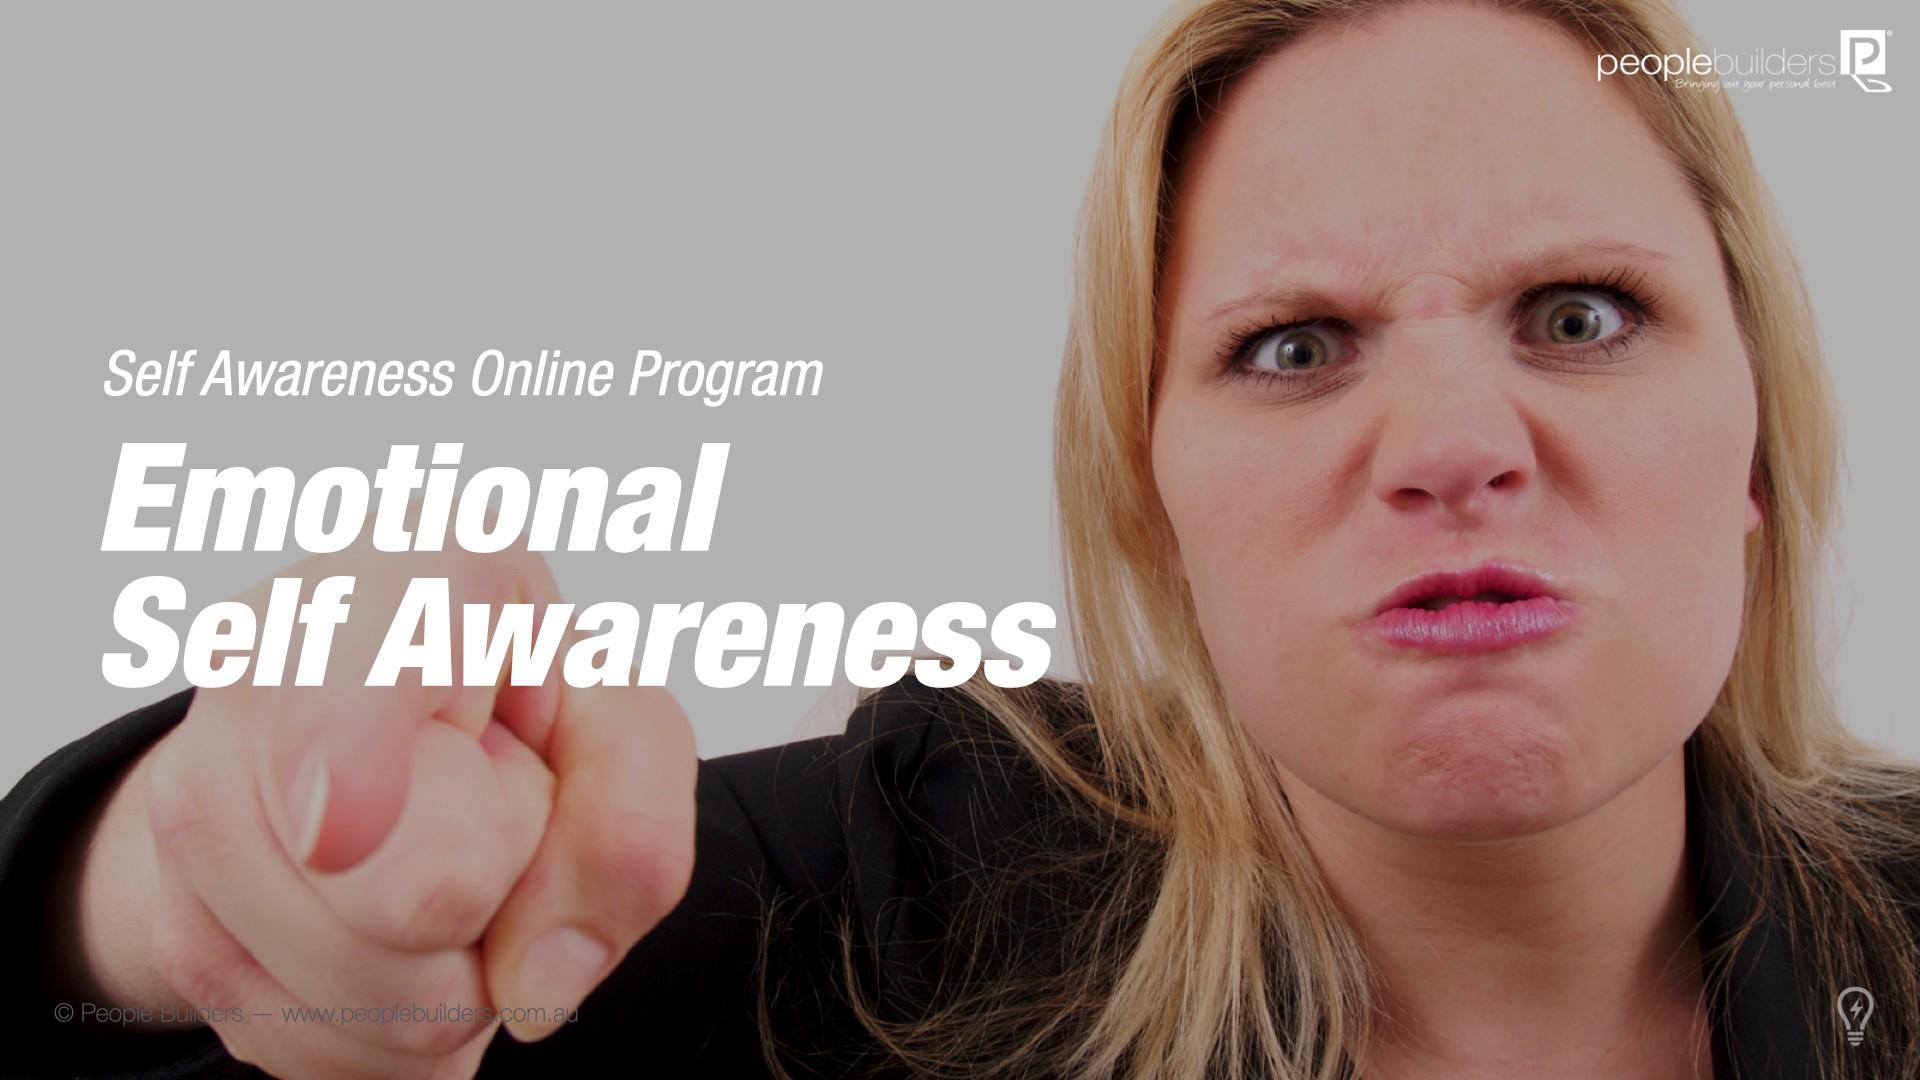 Poster for Emotional Self Awareness showing angry woman pointing a finger.